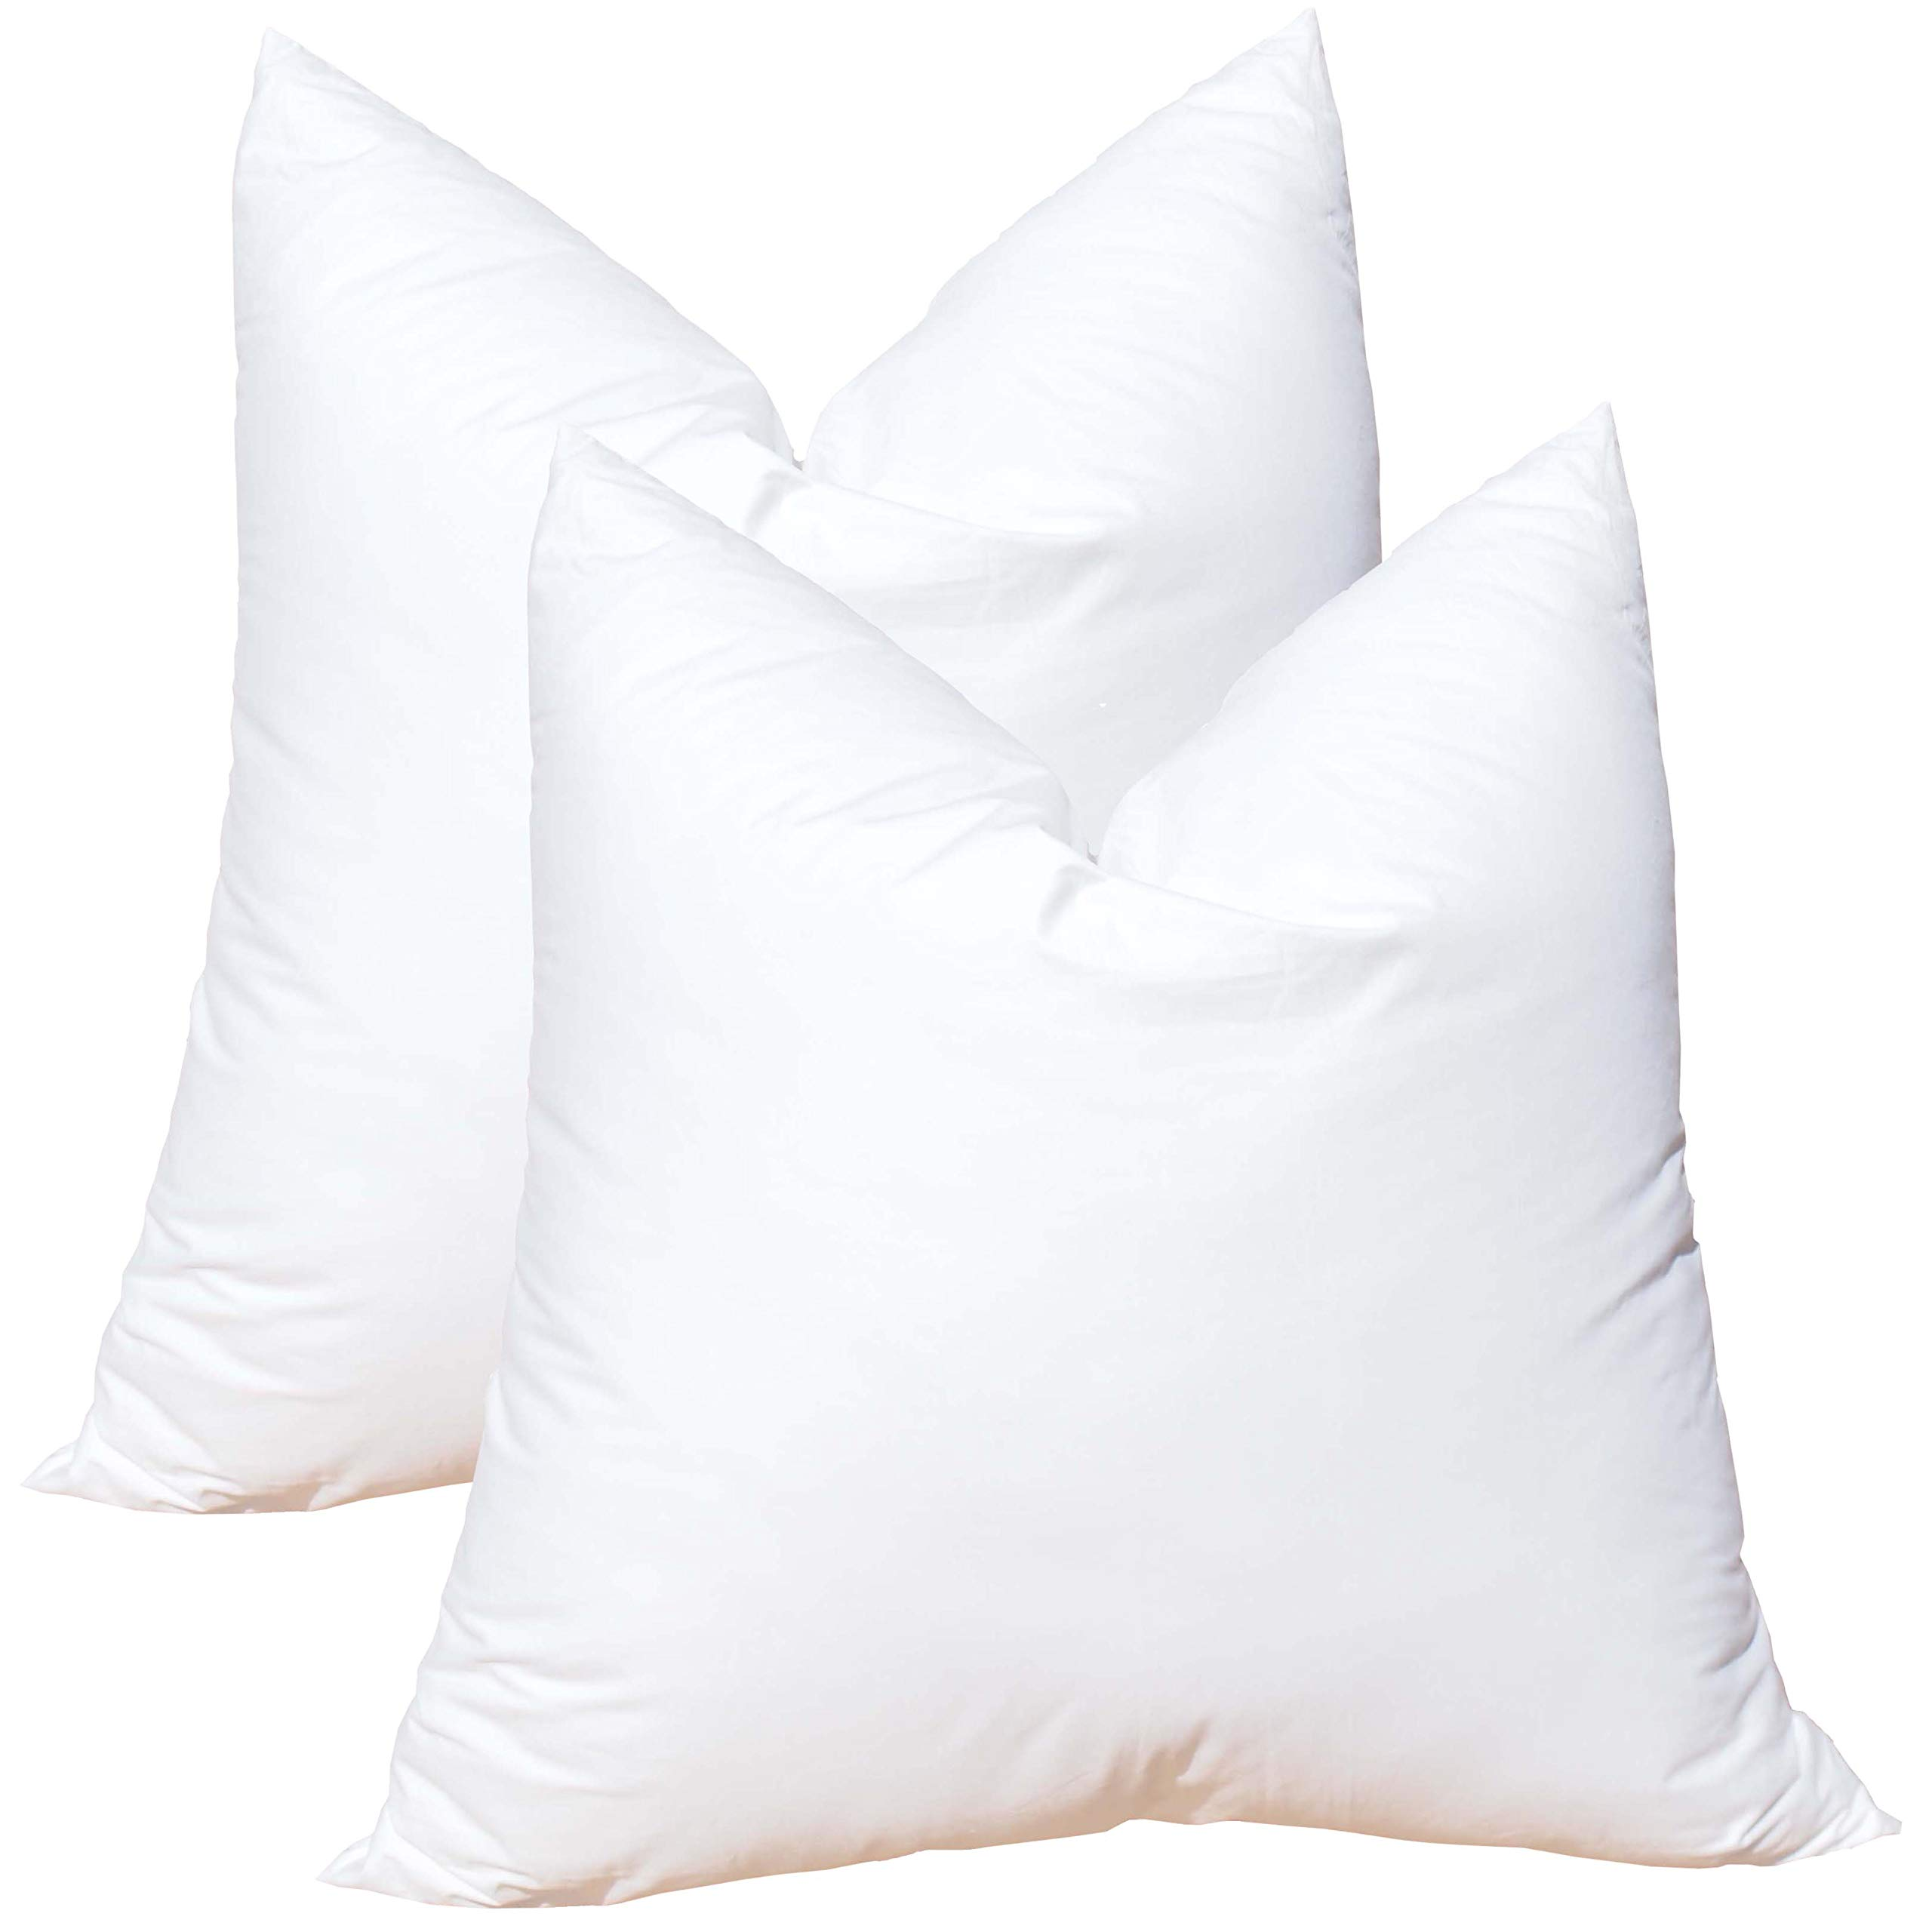 Pillowflex Synthetic Down Alternative Pillow Inserts for Shams (Set of 2 28 Inch by 28 Inch)